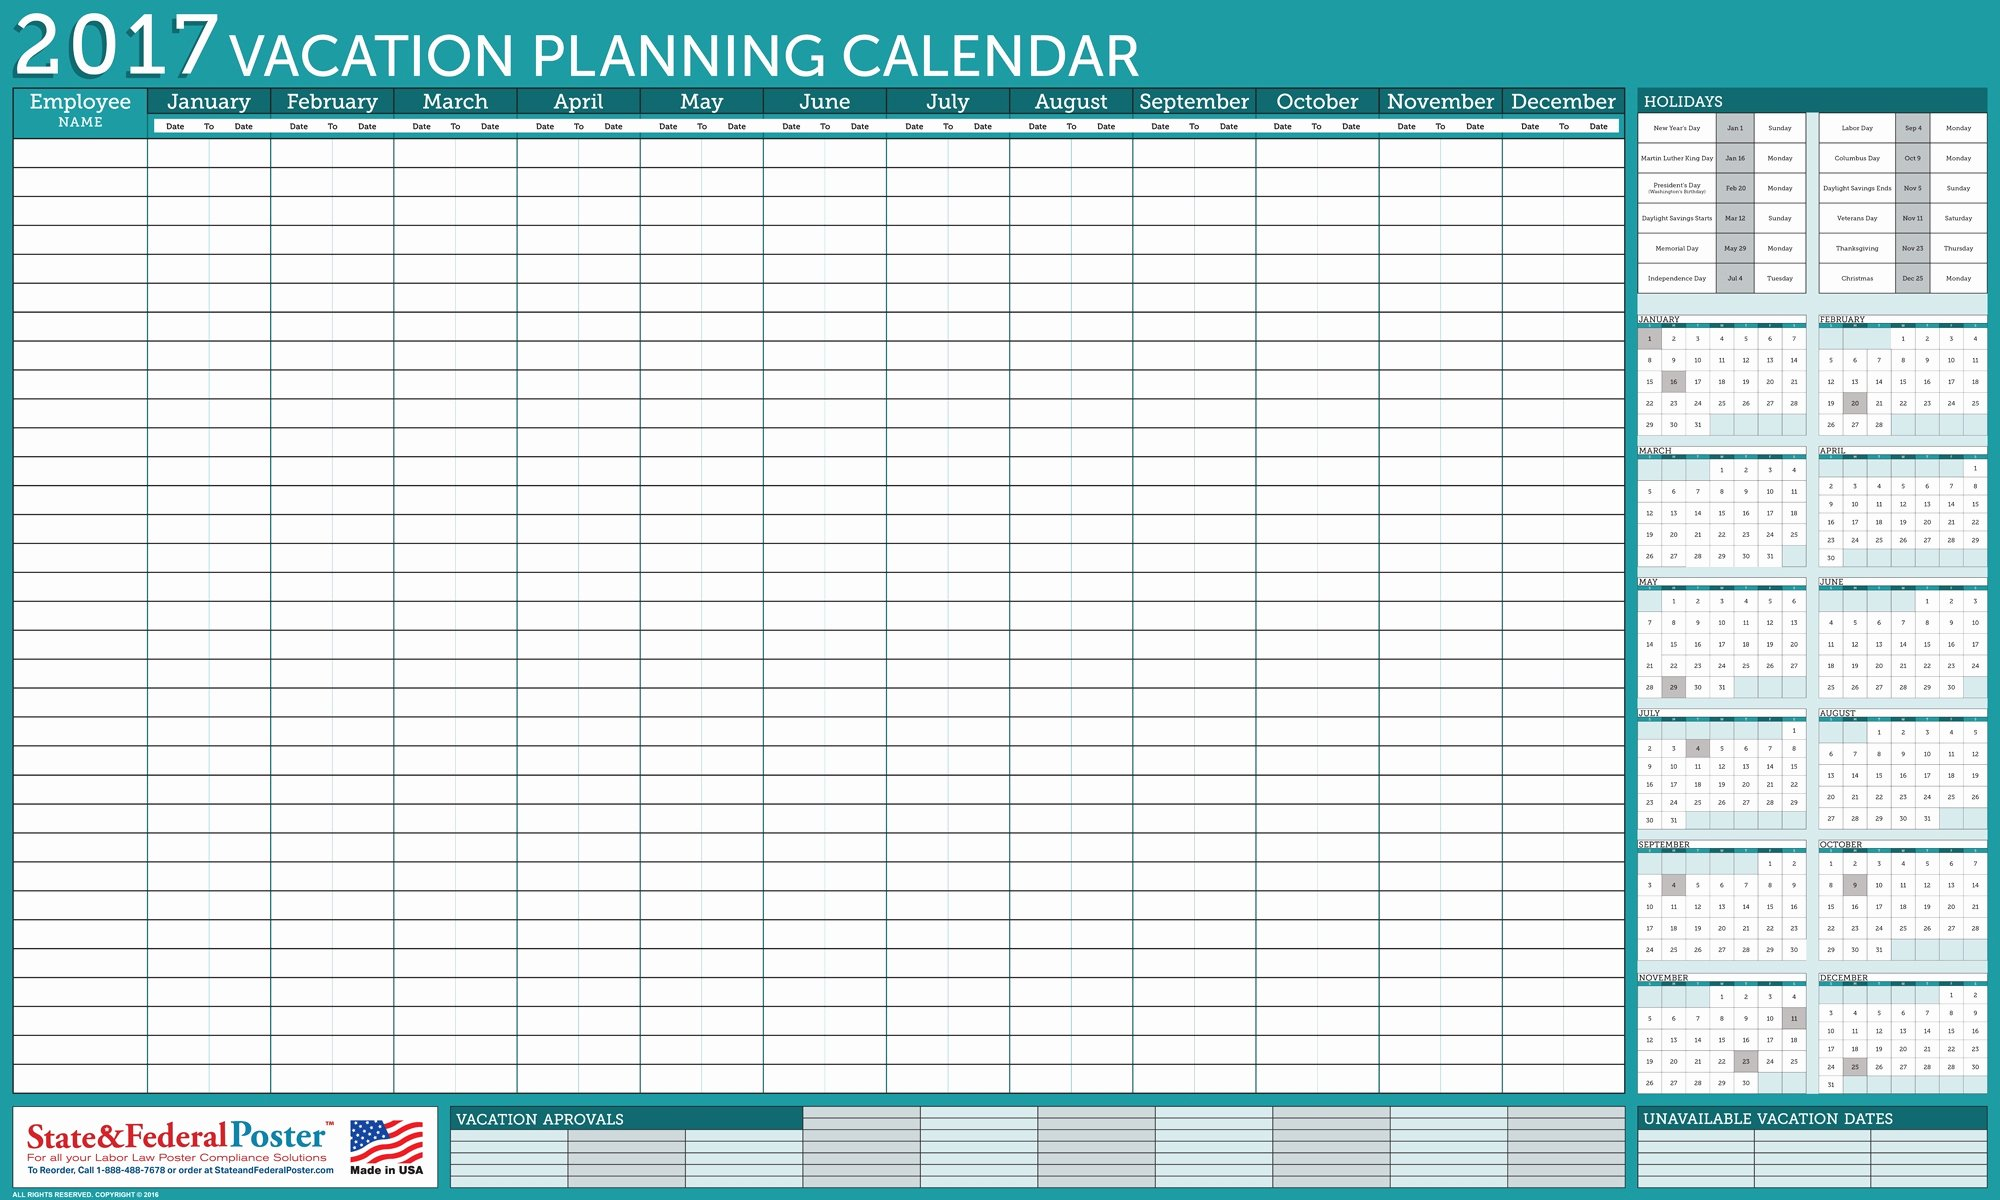 Vacation Calendar Template 2017 Beautiful Fice Wall 2017 Vacation Planner Turquoise 40 X 24 Inches